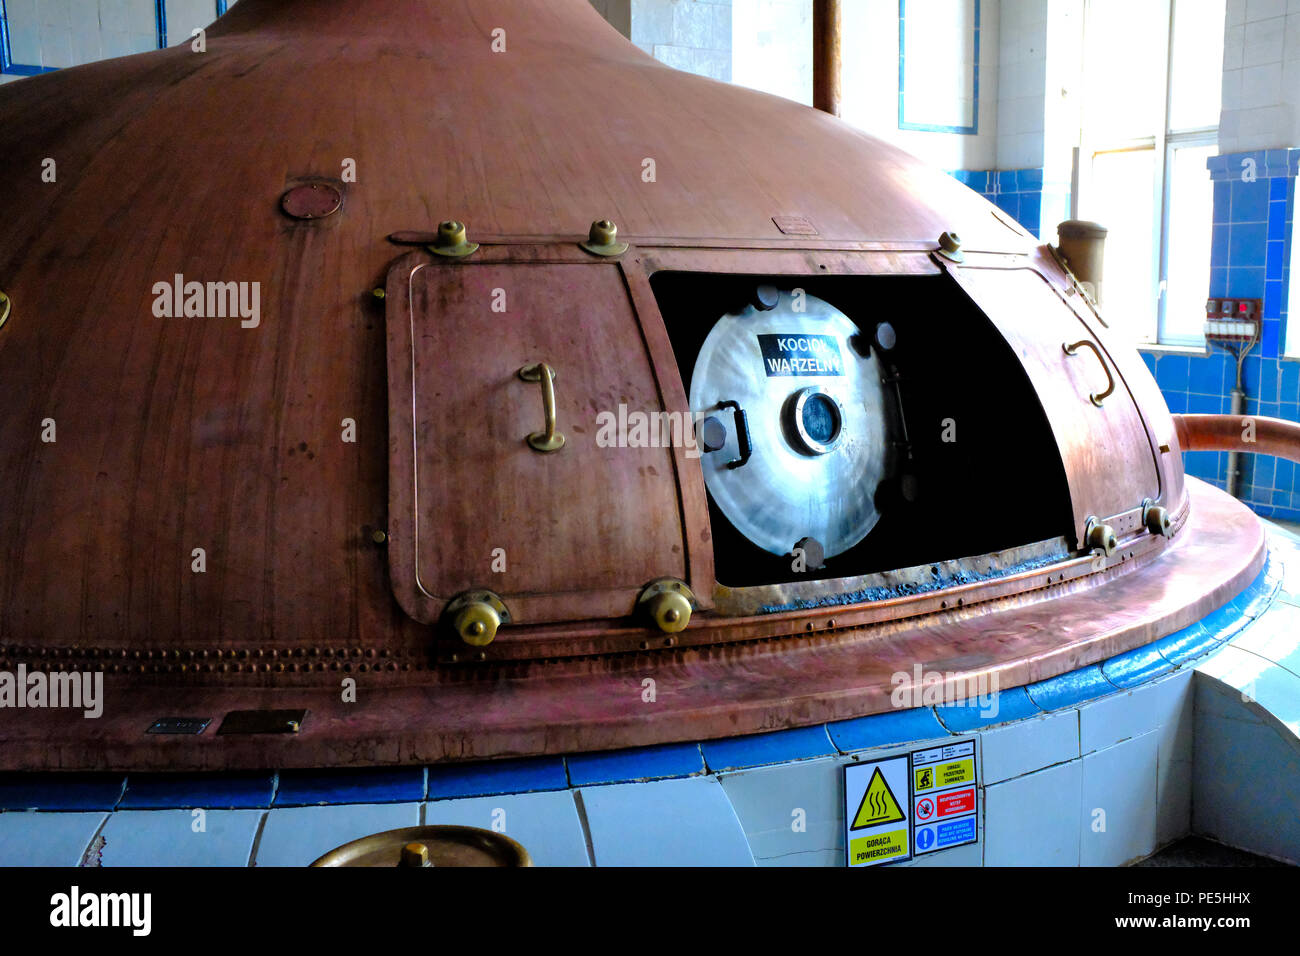 Brewing copper pot stills at the Tychy (Tyskie) Brewery in Poland, Europe. - Stock Image